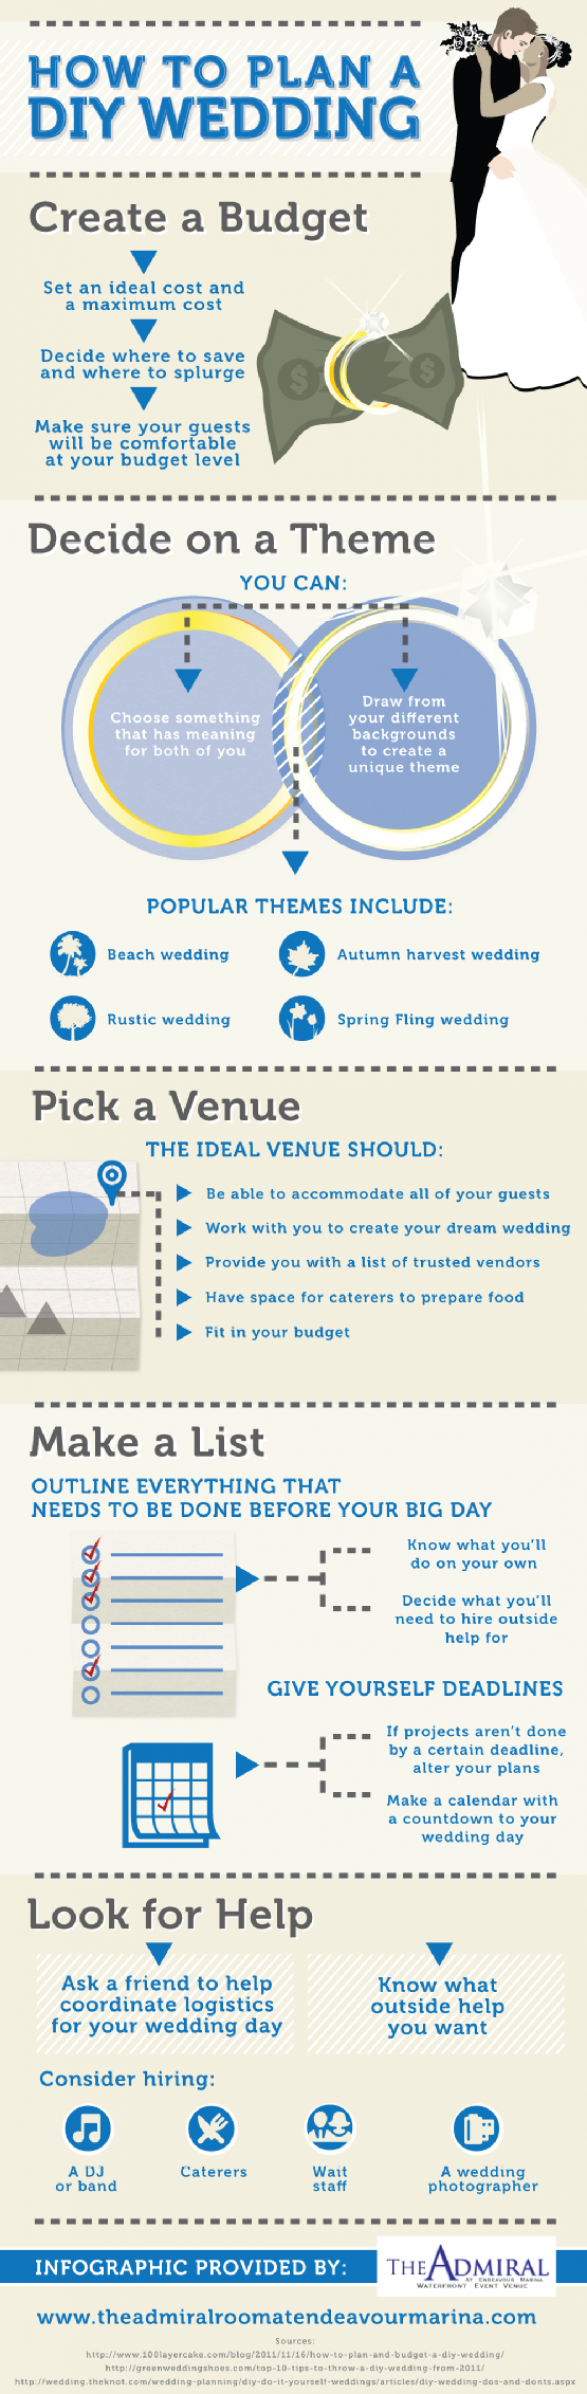 How To Plan a DIY Wedding